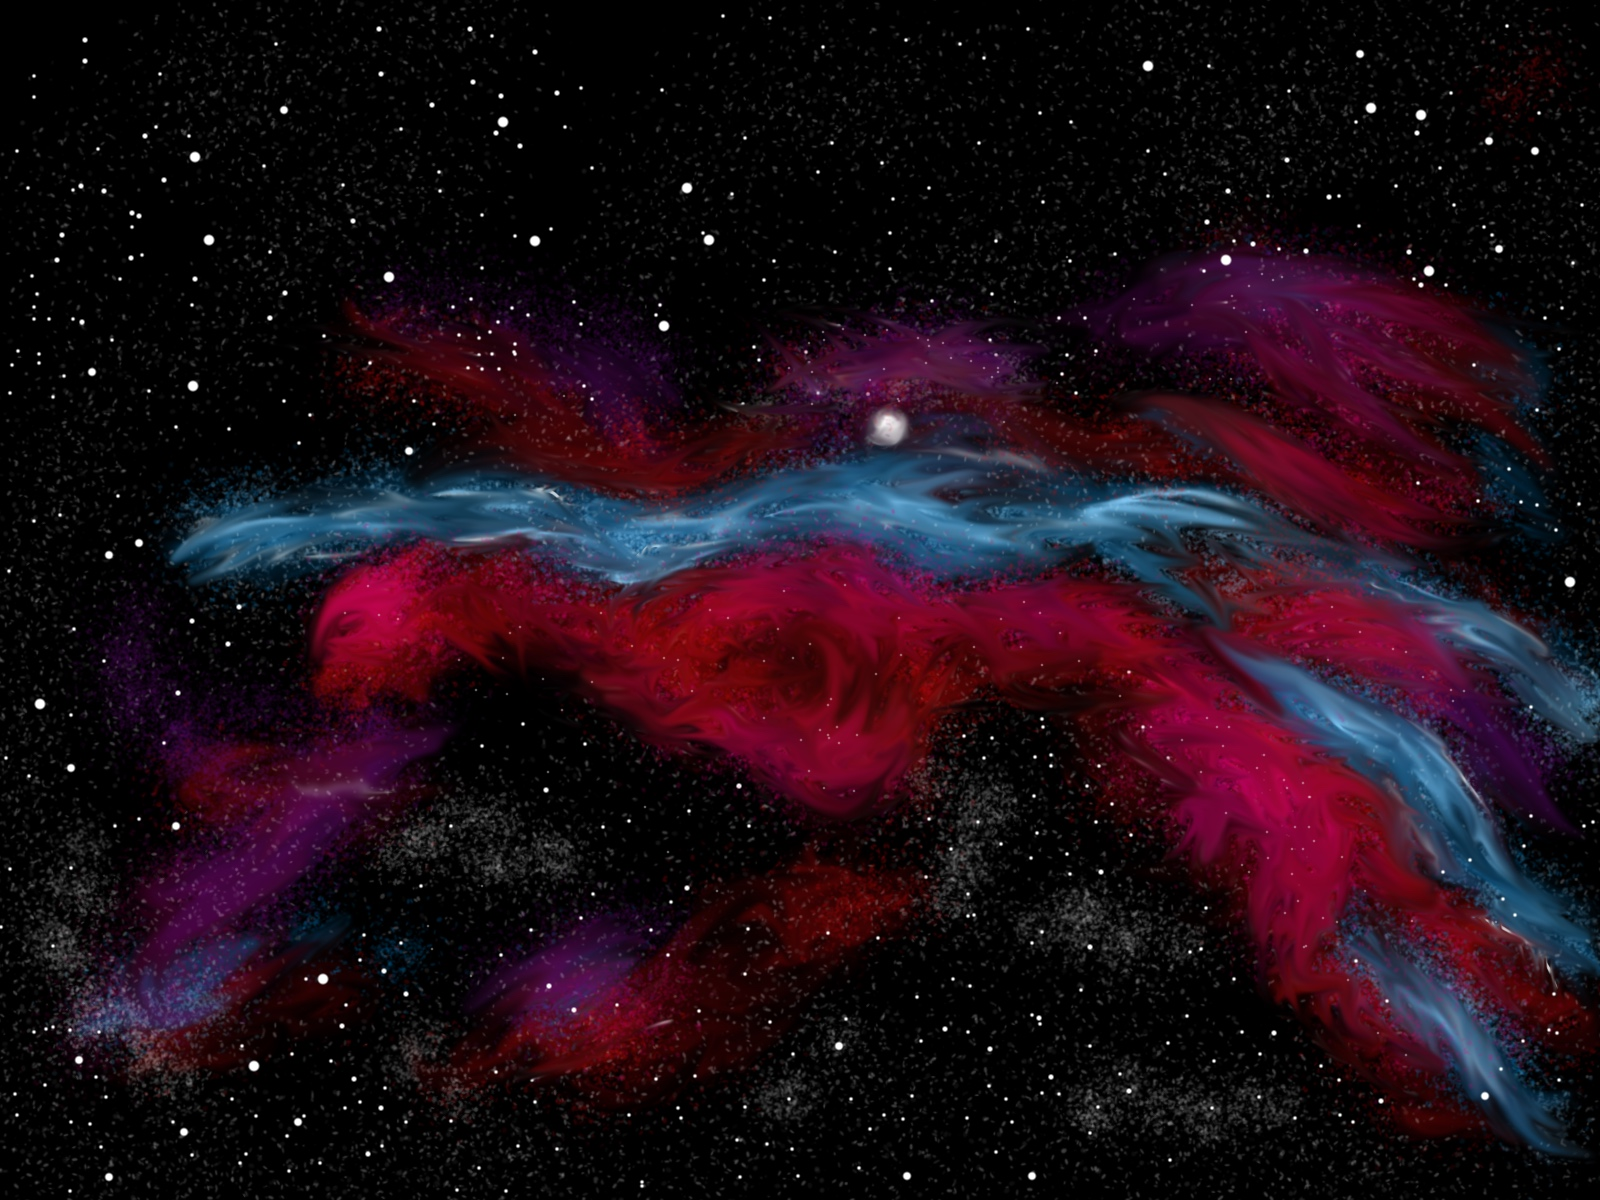 Horizontal Red and Blue Nebula Painting